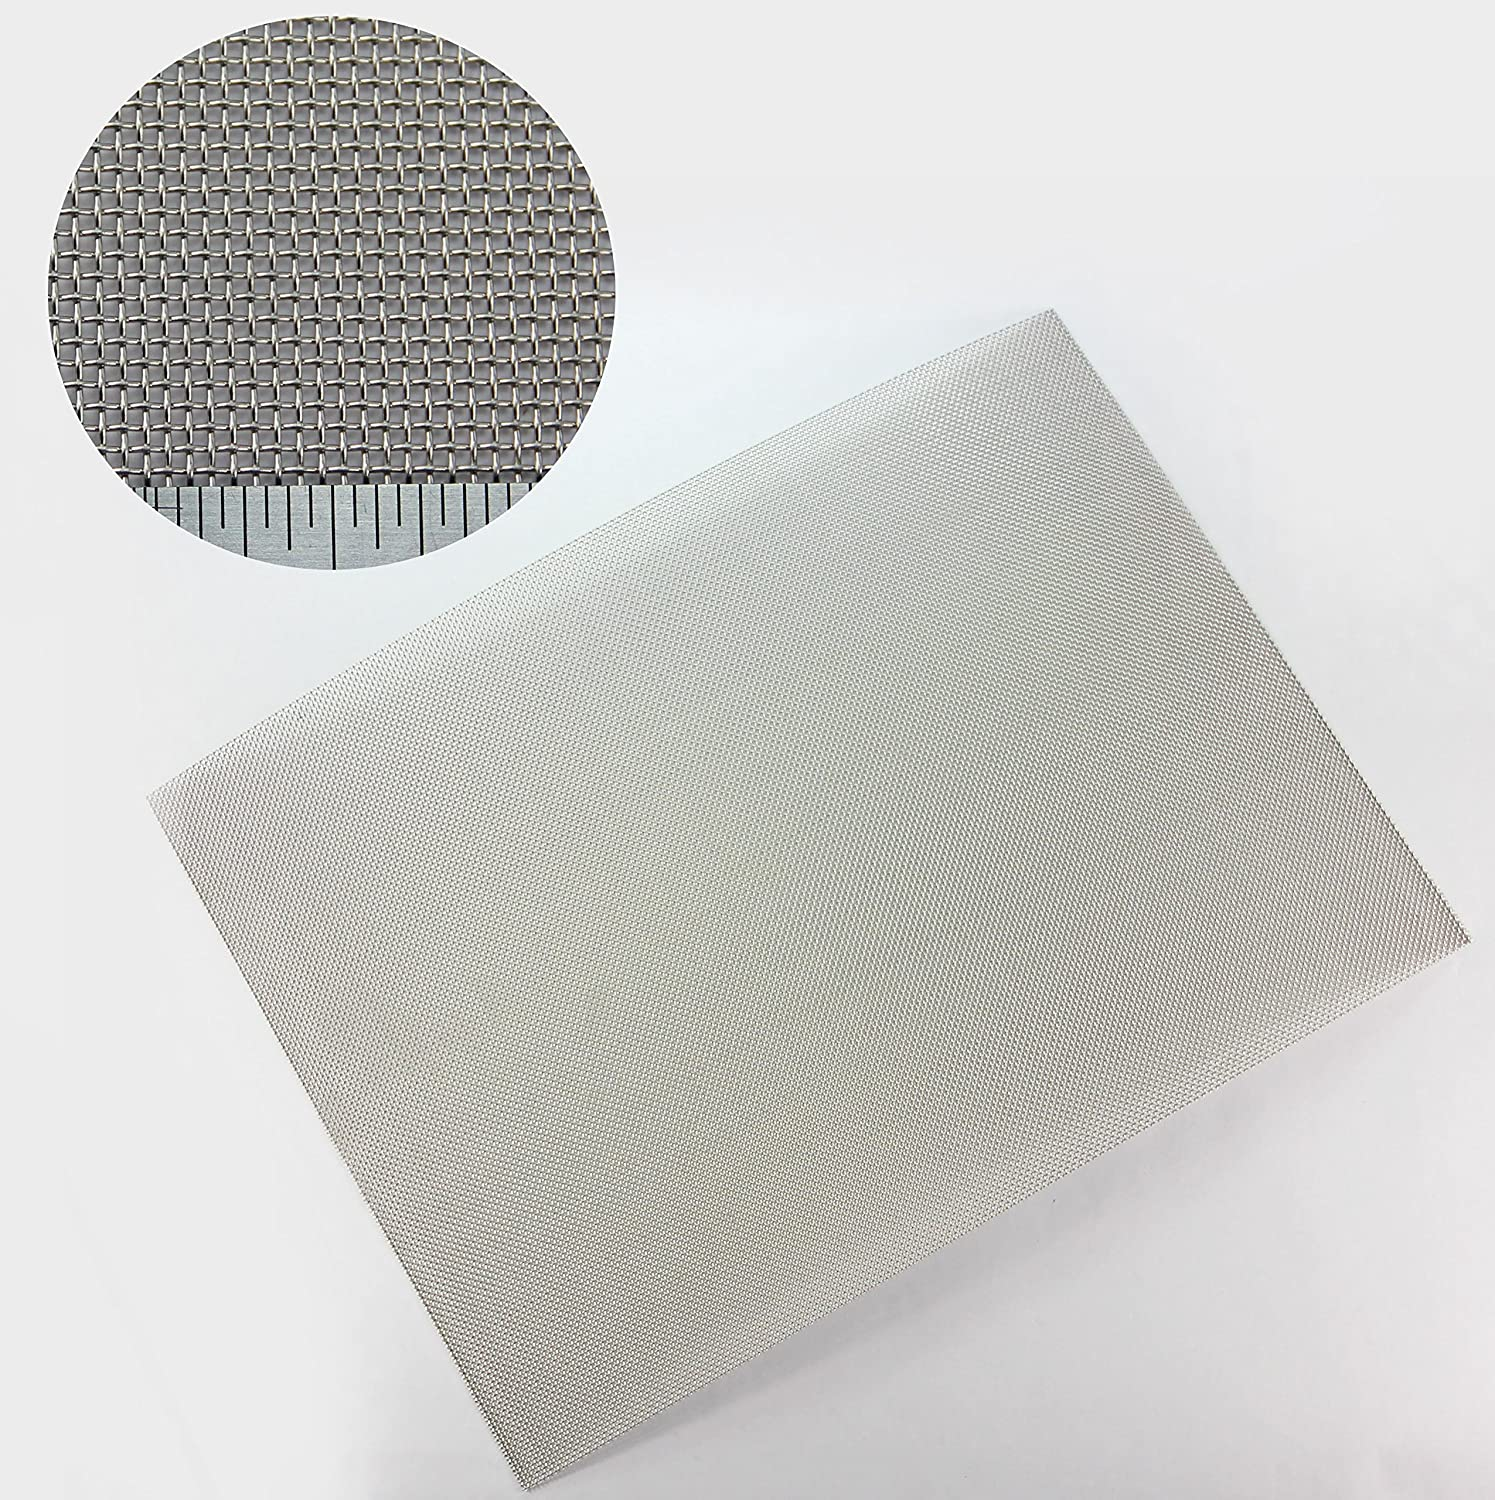 Stainless Steel Rodent Mesh - A3 Sheet (300 x 420mm) - Easy To Cut and Install The Mesh Company